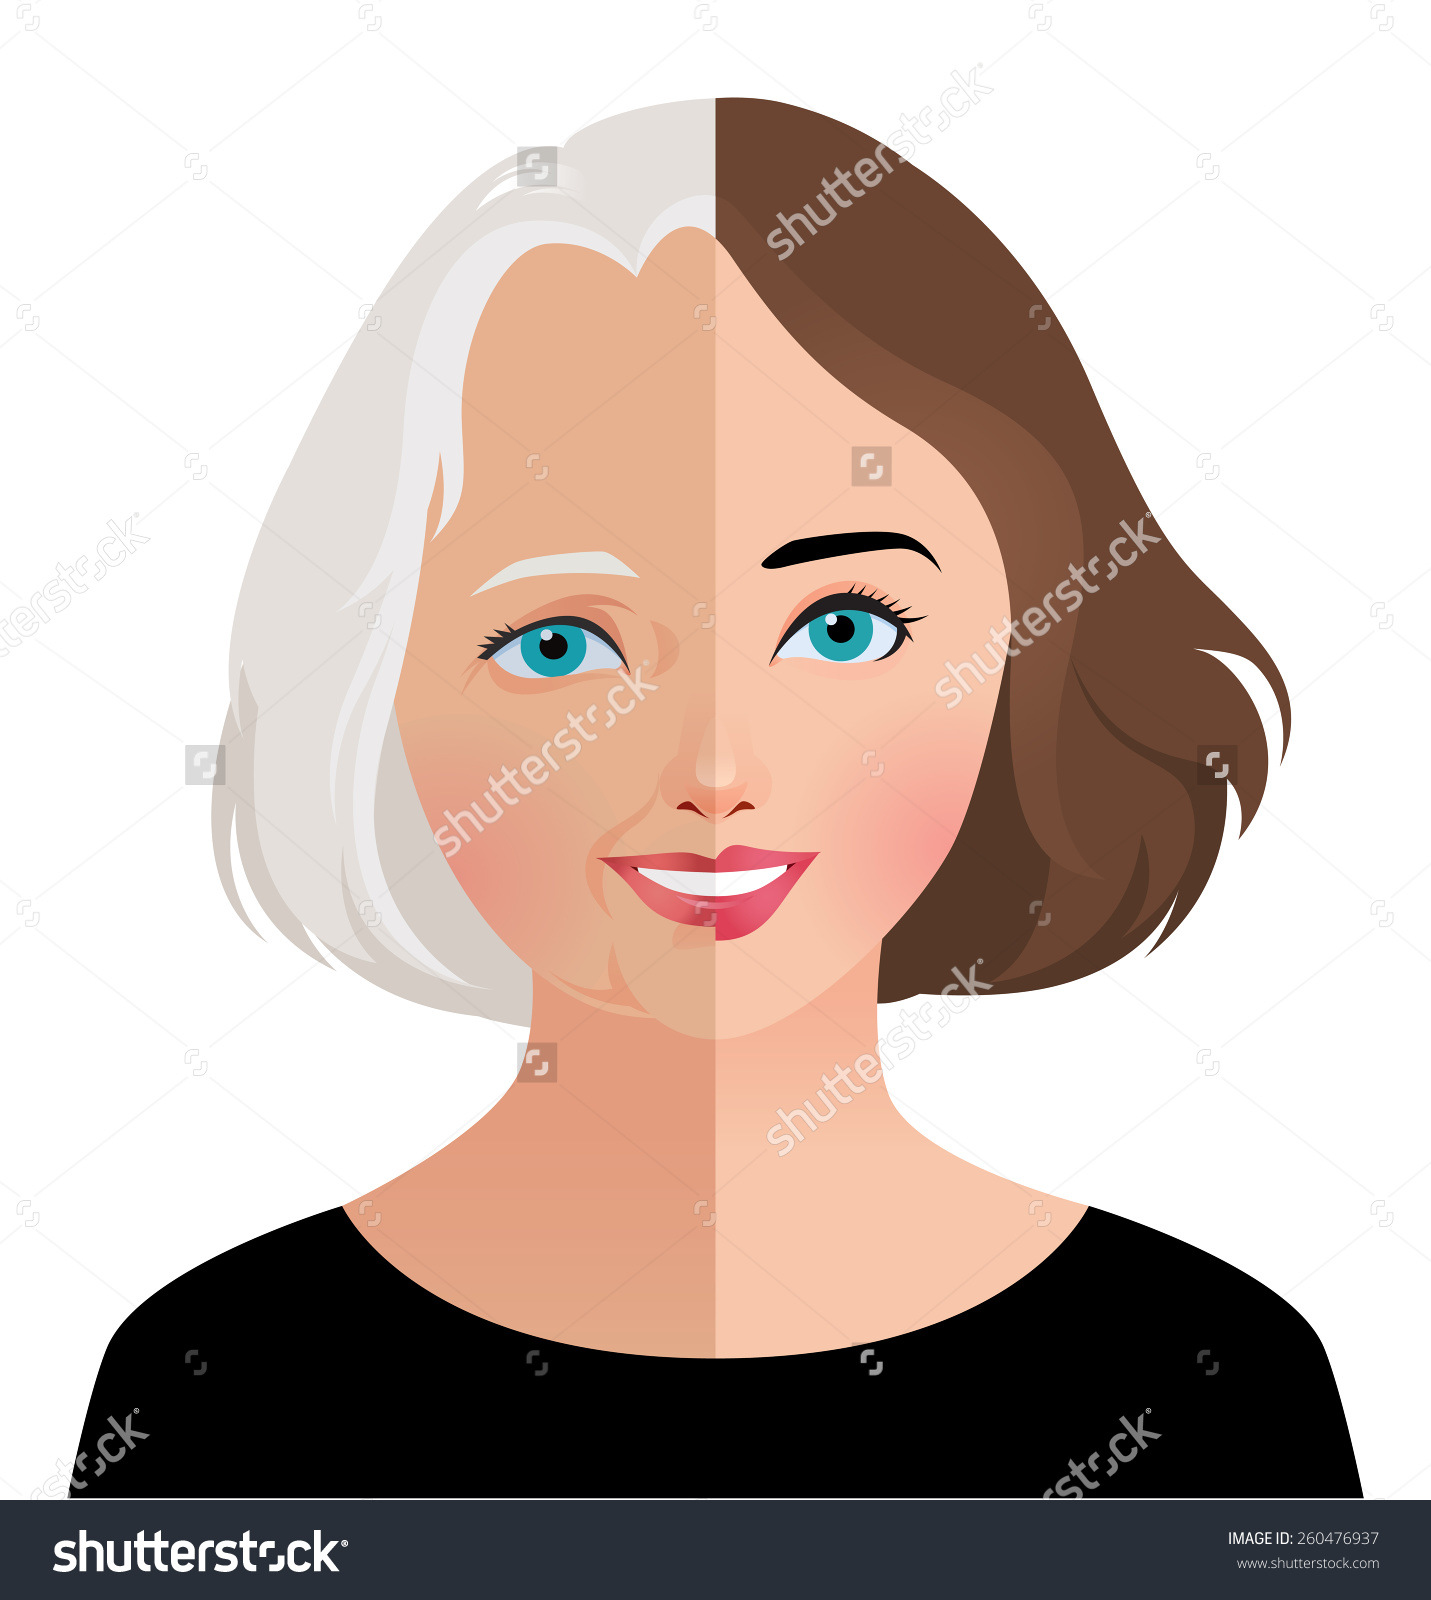 Anti wrinkle face clipart #16